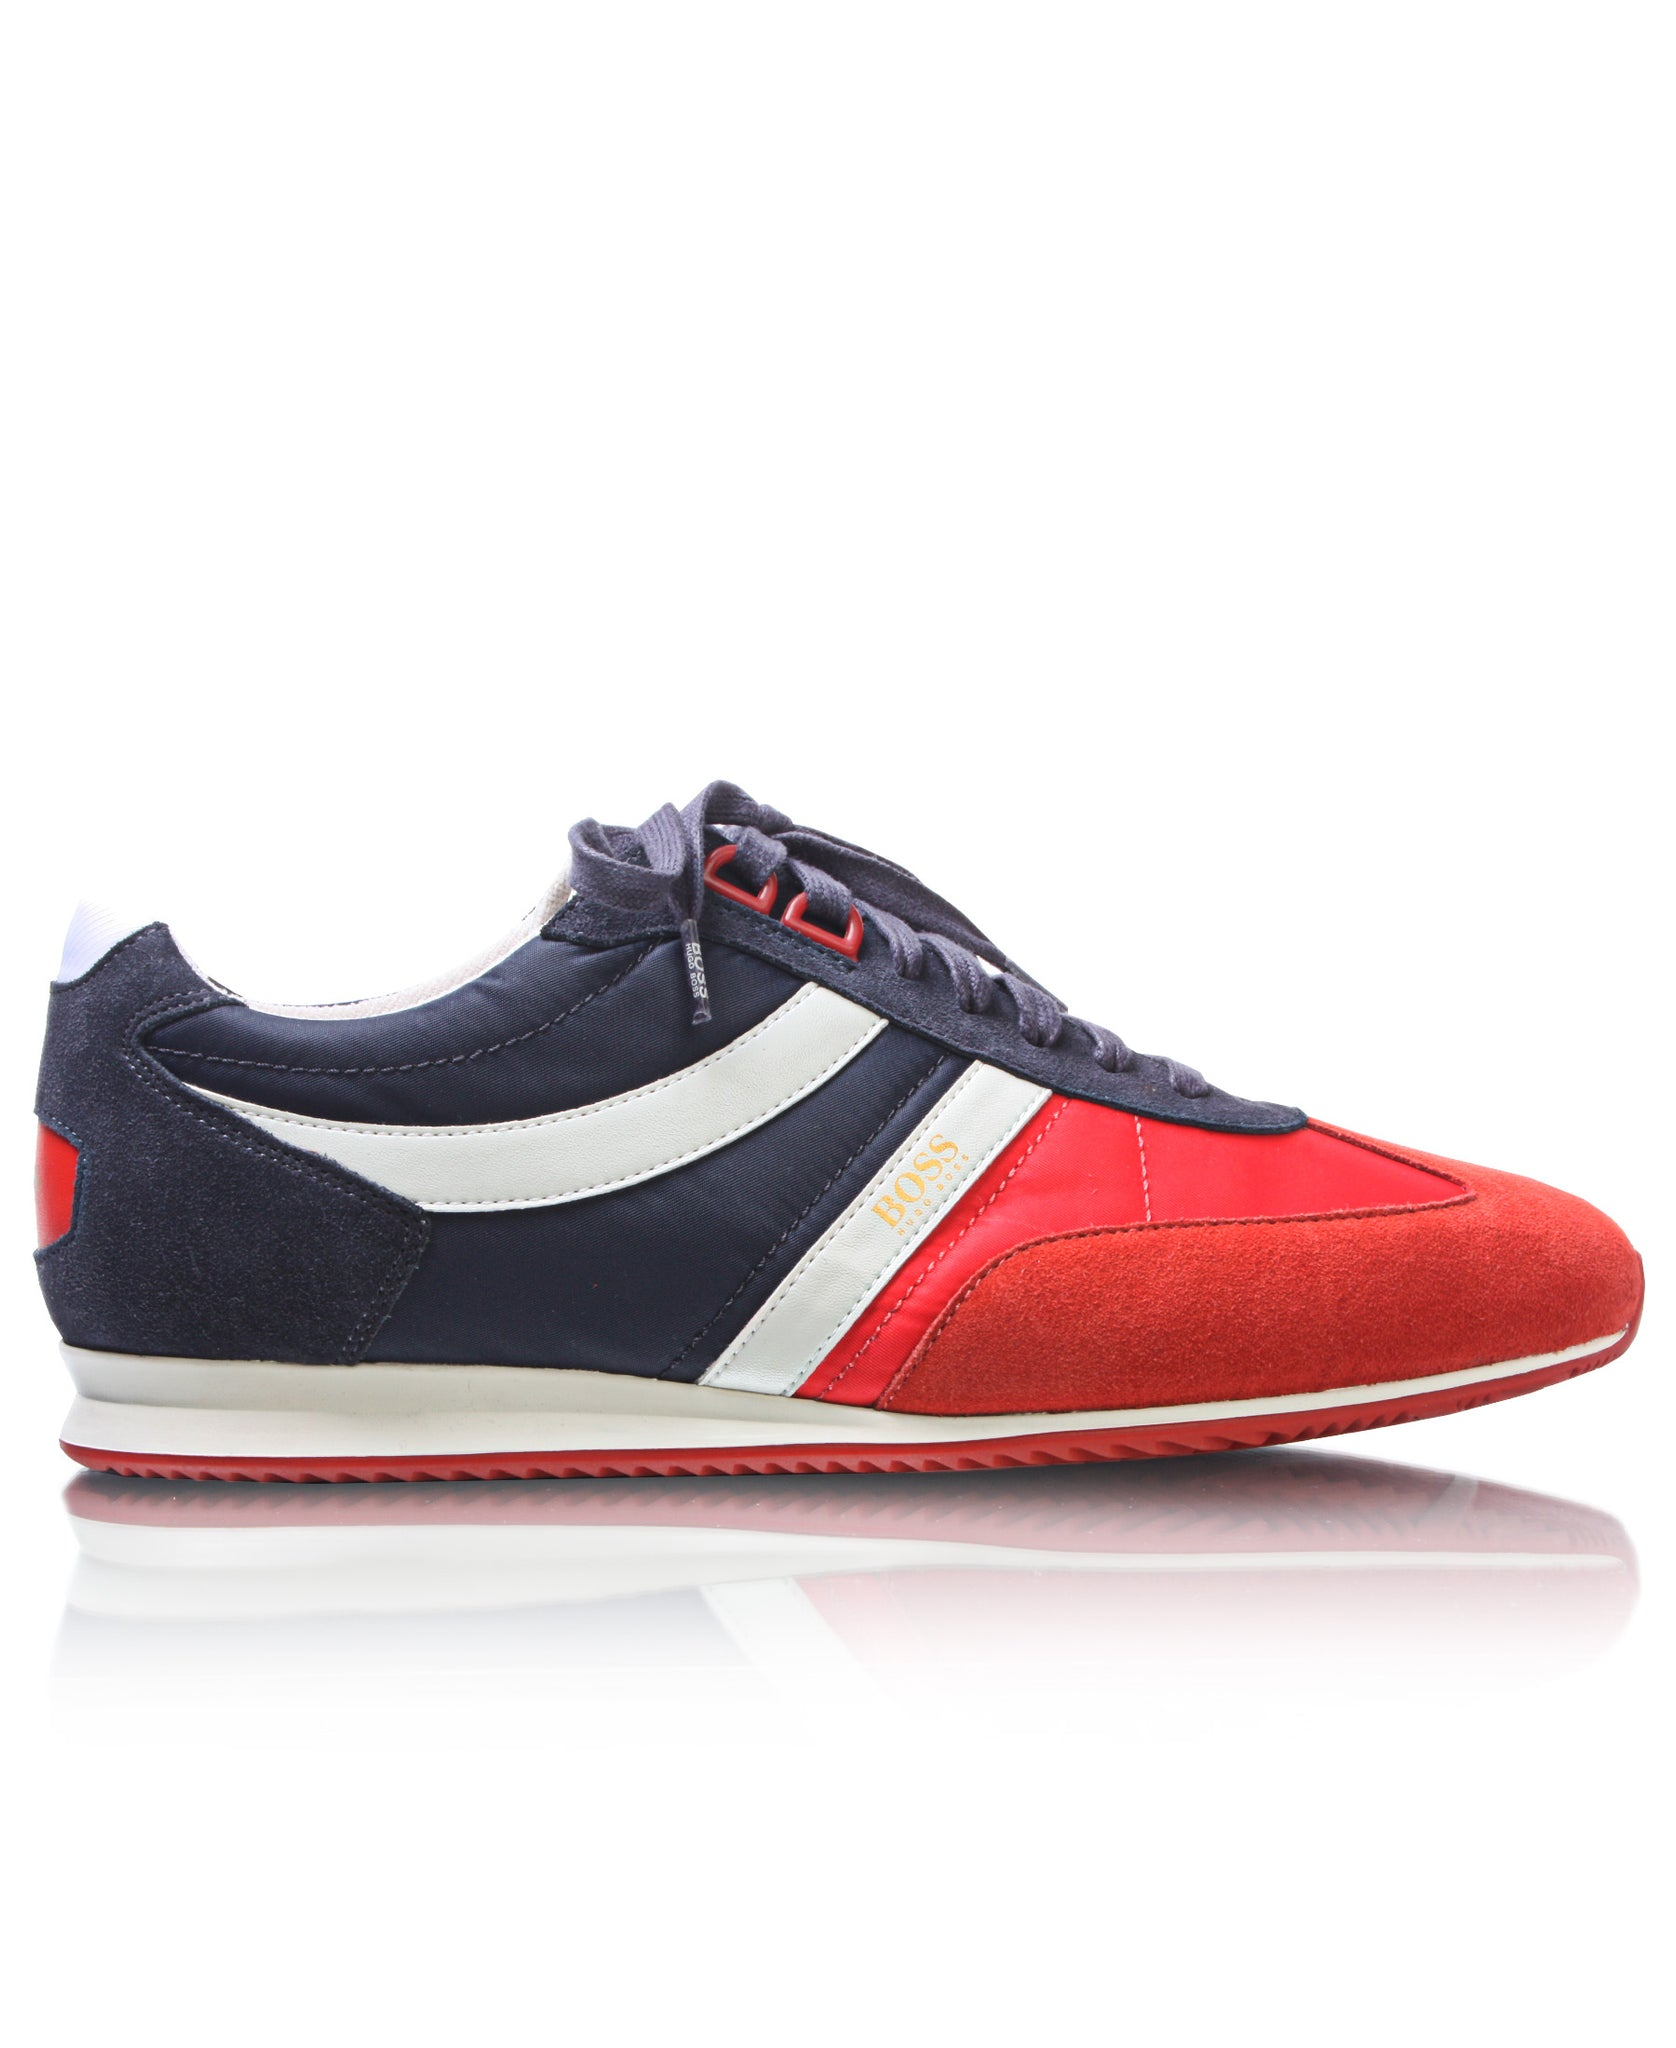 Hugo Boss Sneakers - Red